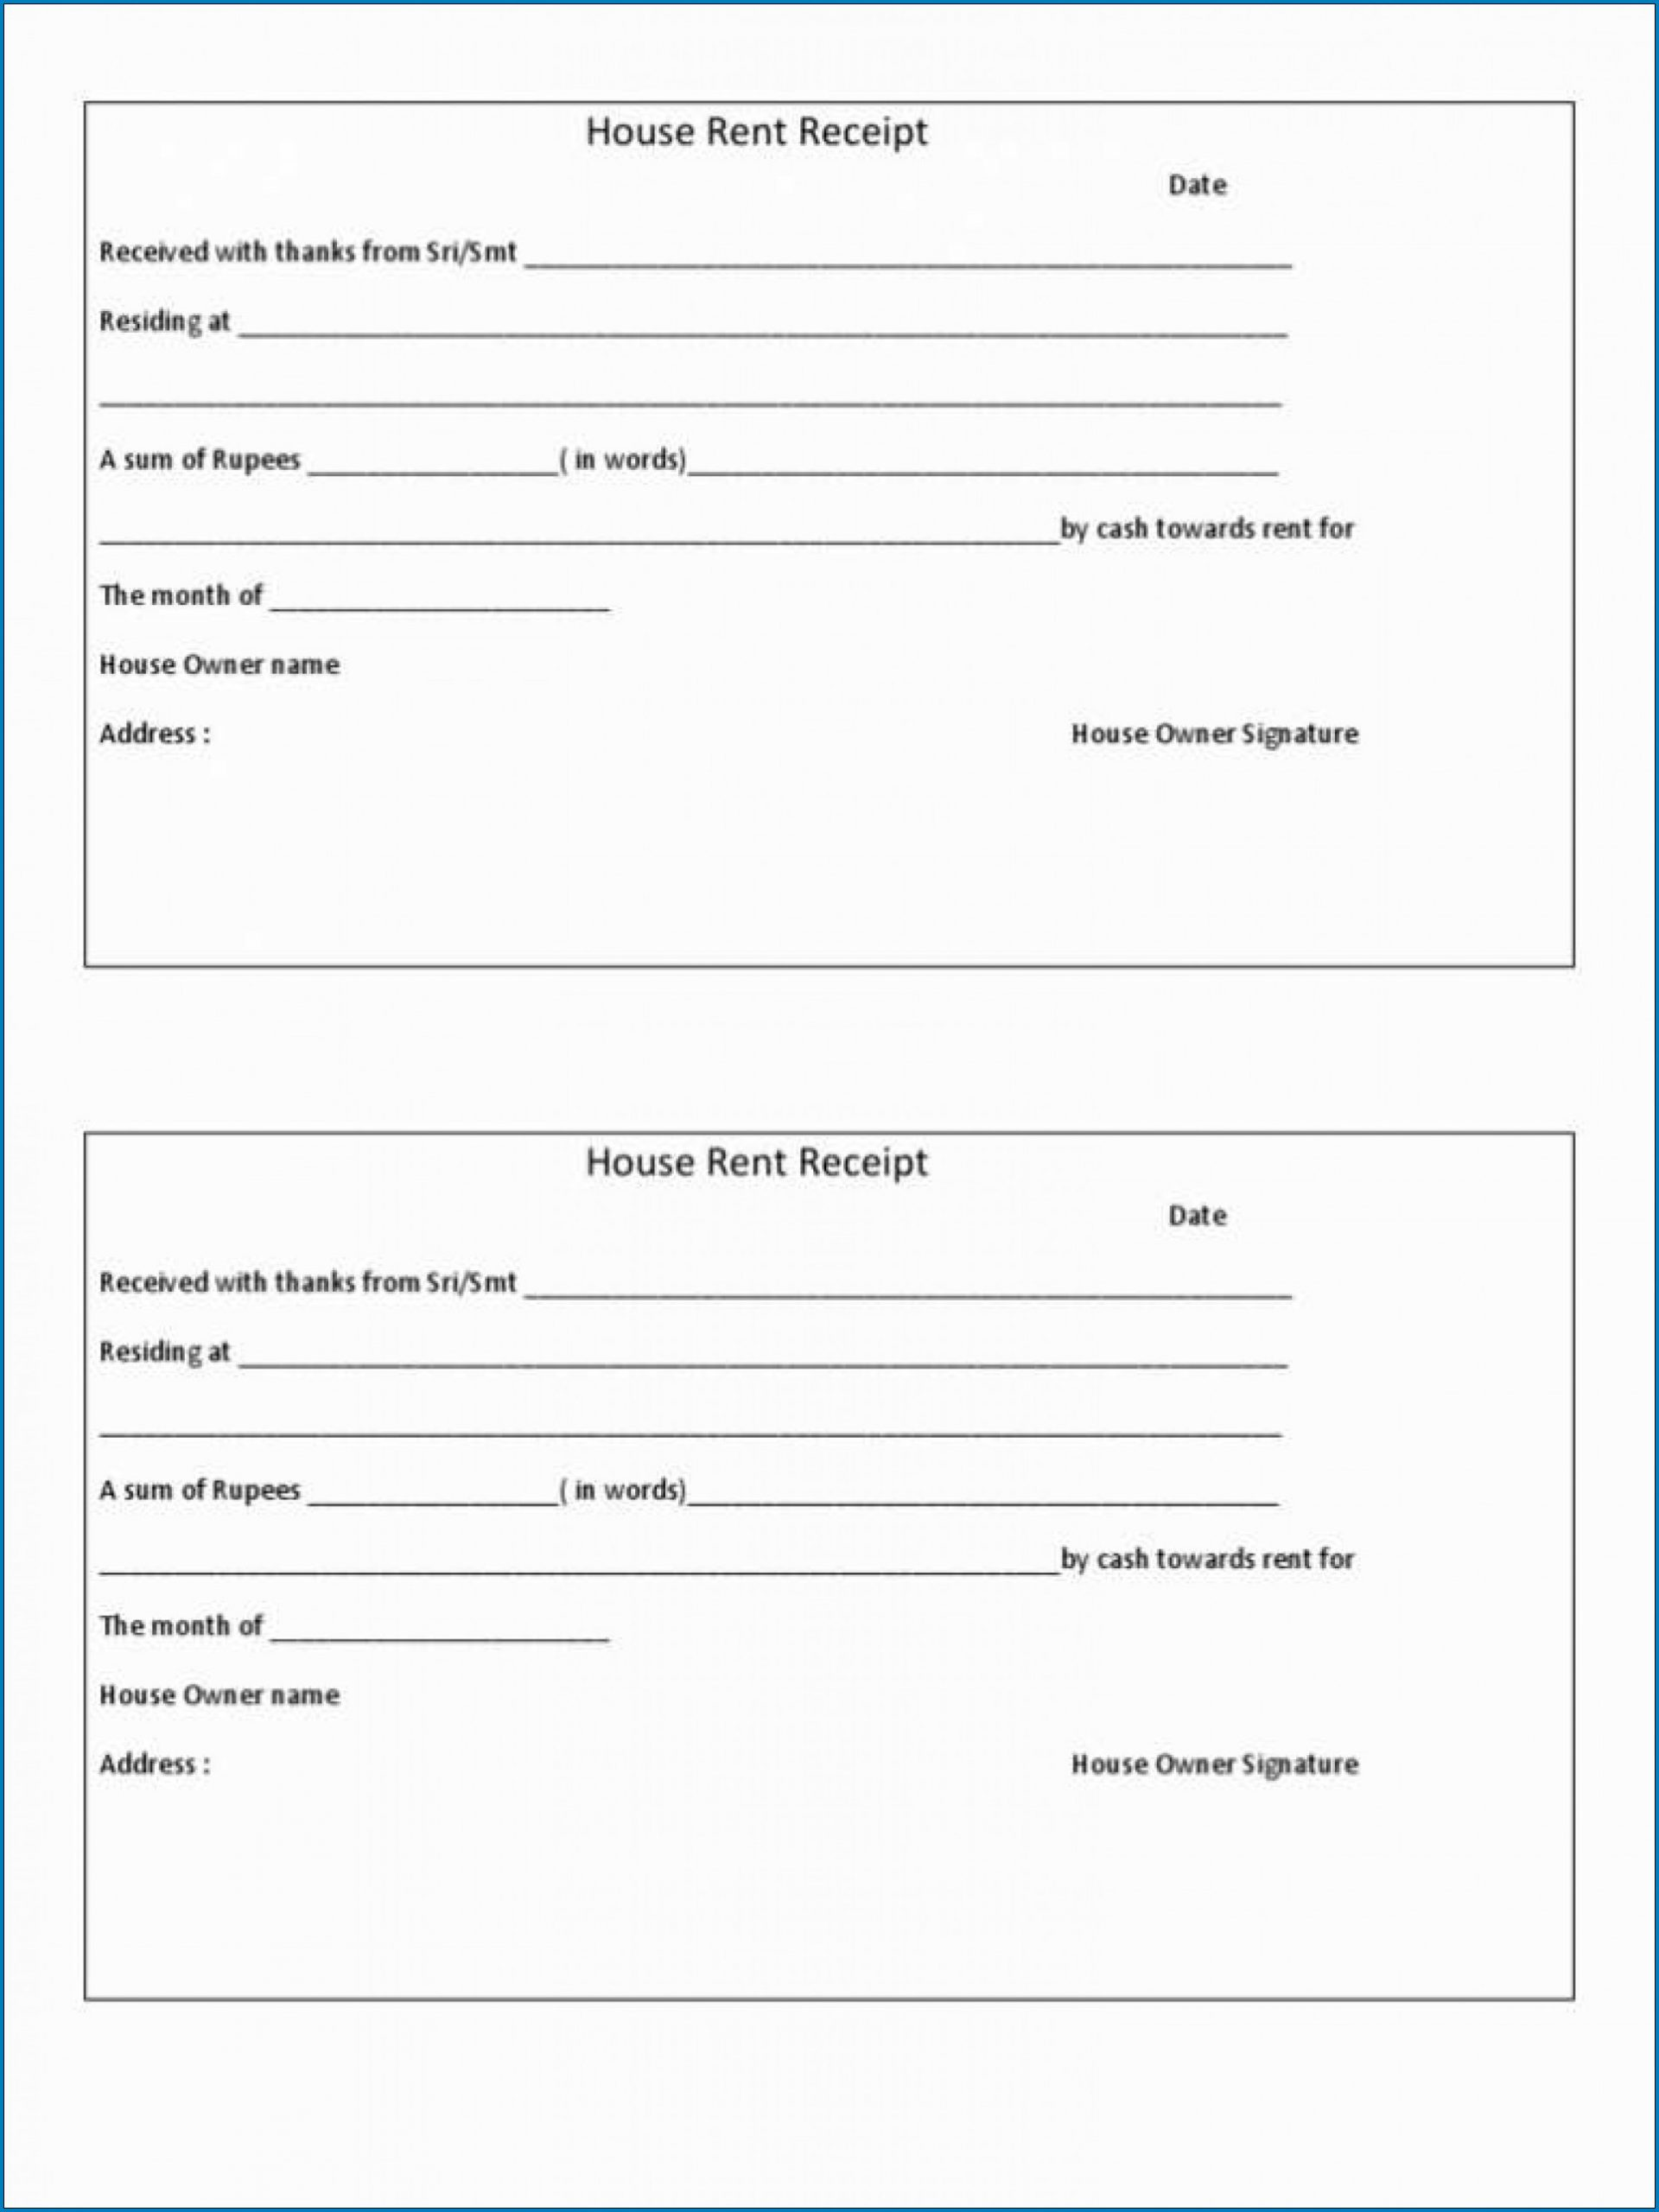 Sample of House Rent Receipt Template